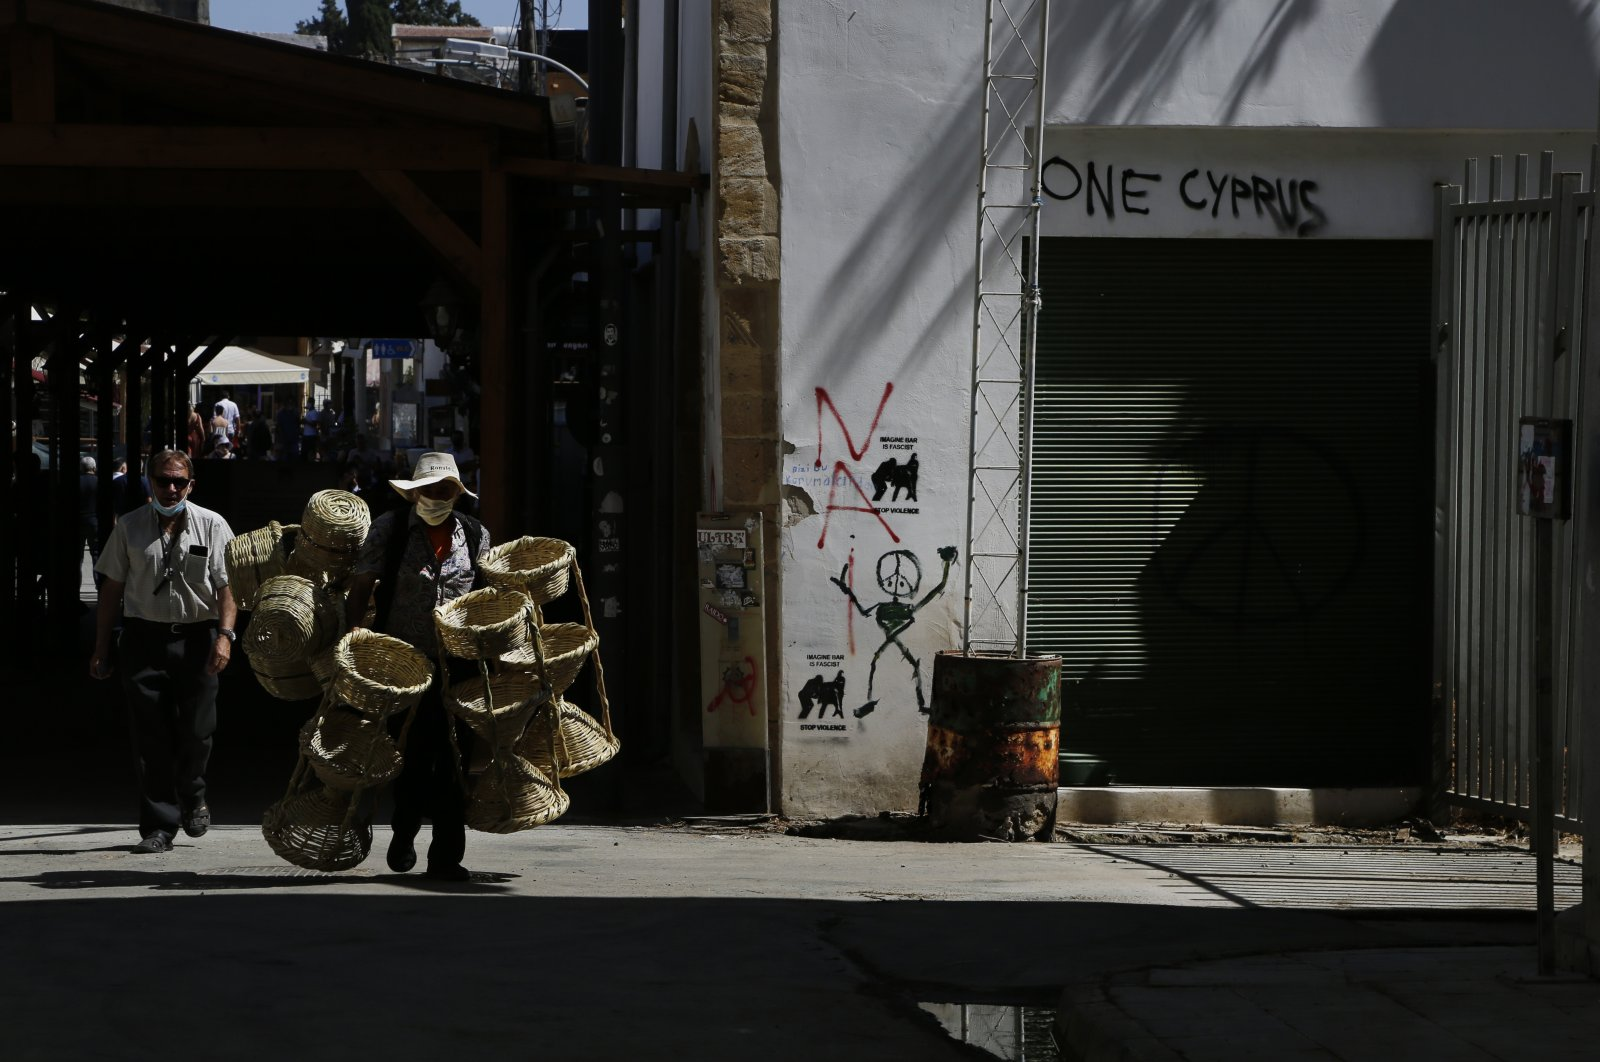 An elderly Turkish Cypriot man, wearing a protective face mask, carries his baskets for sale as he crosses from the Turkish north to the Greek south at the Ledra checkpoint in divided capital Nicosia, the island of Cyprus, June 4, 2021. (AP Photo)